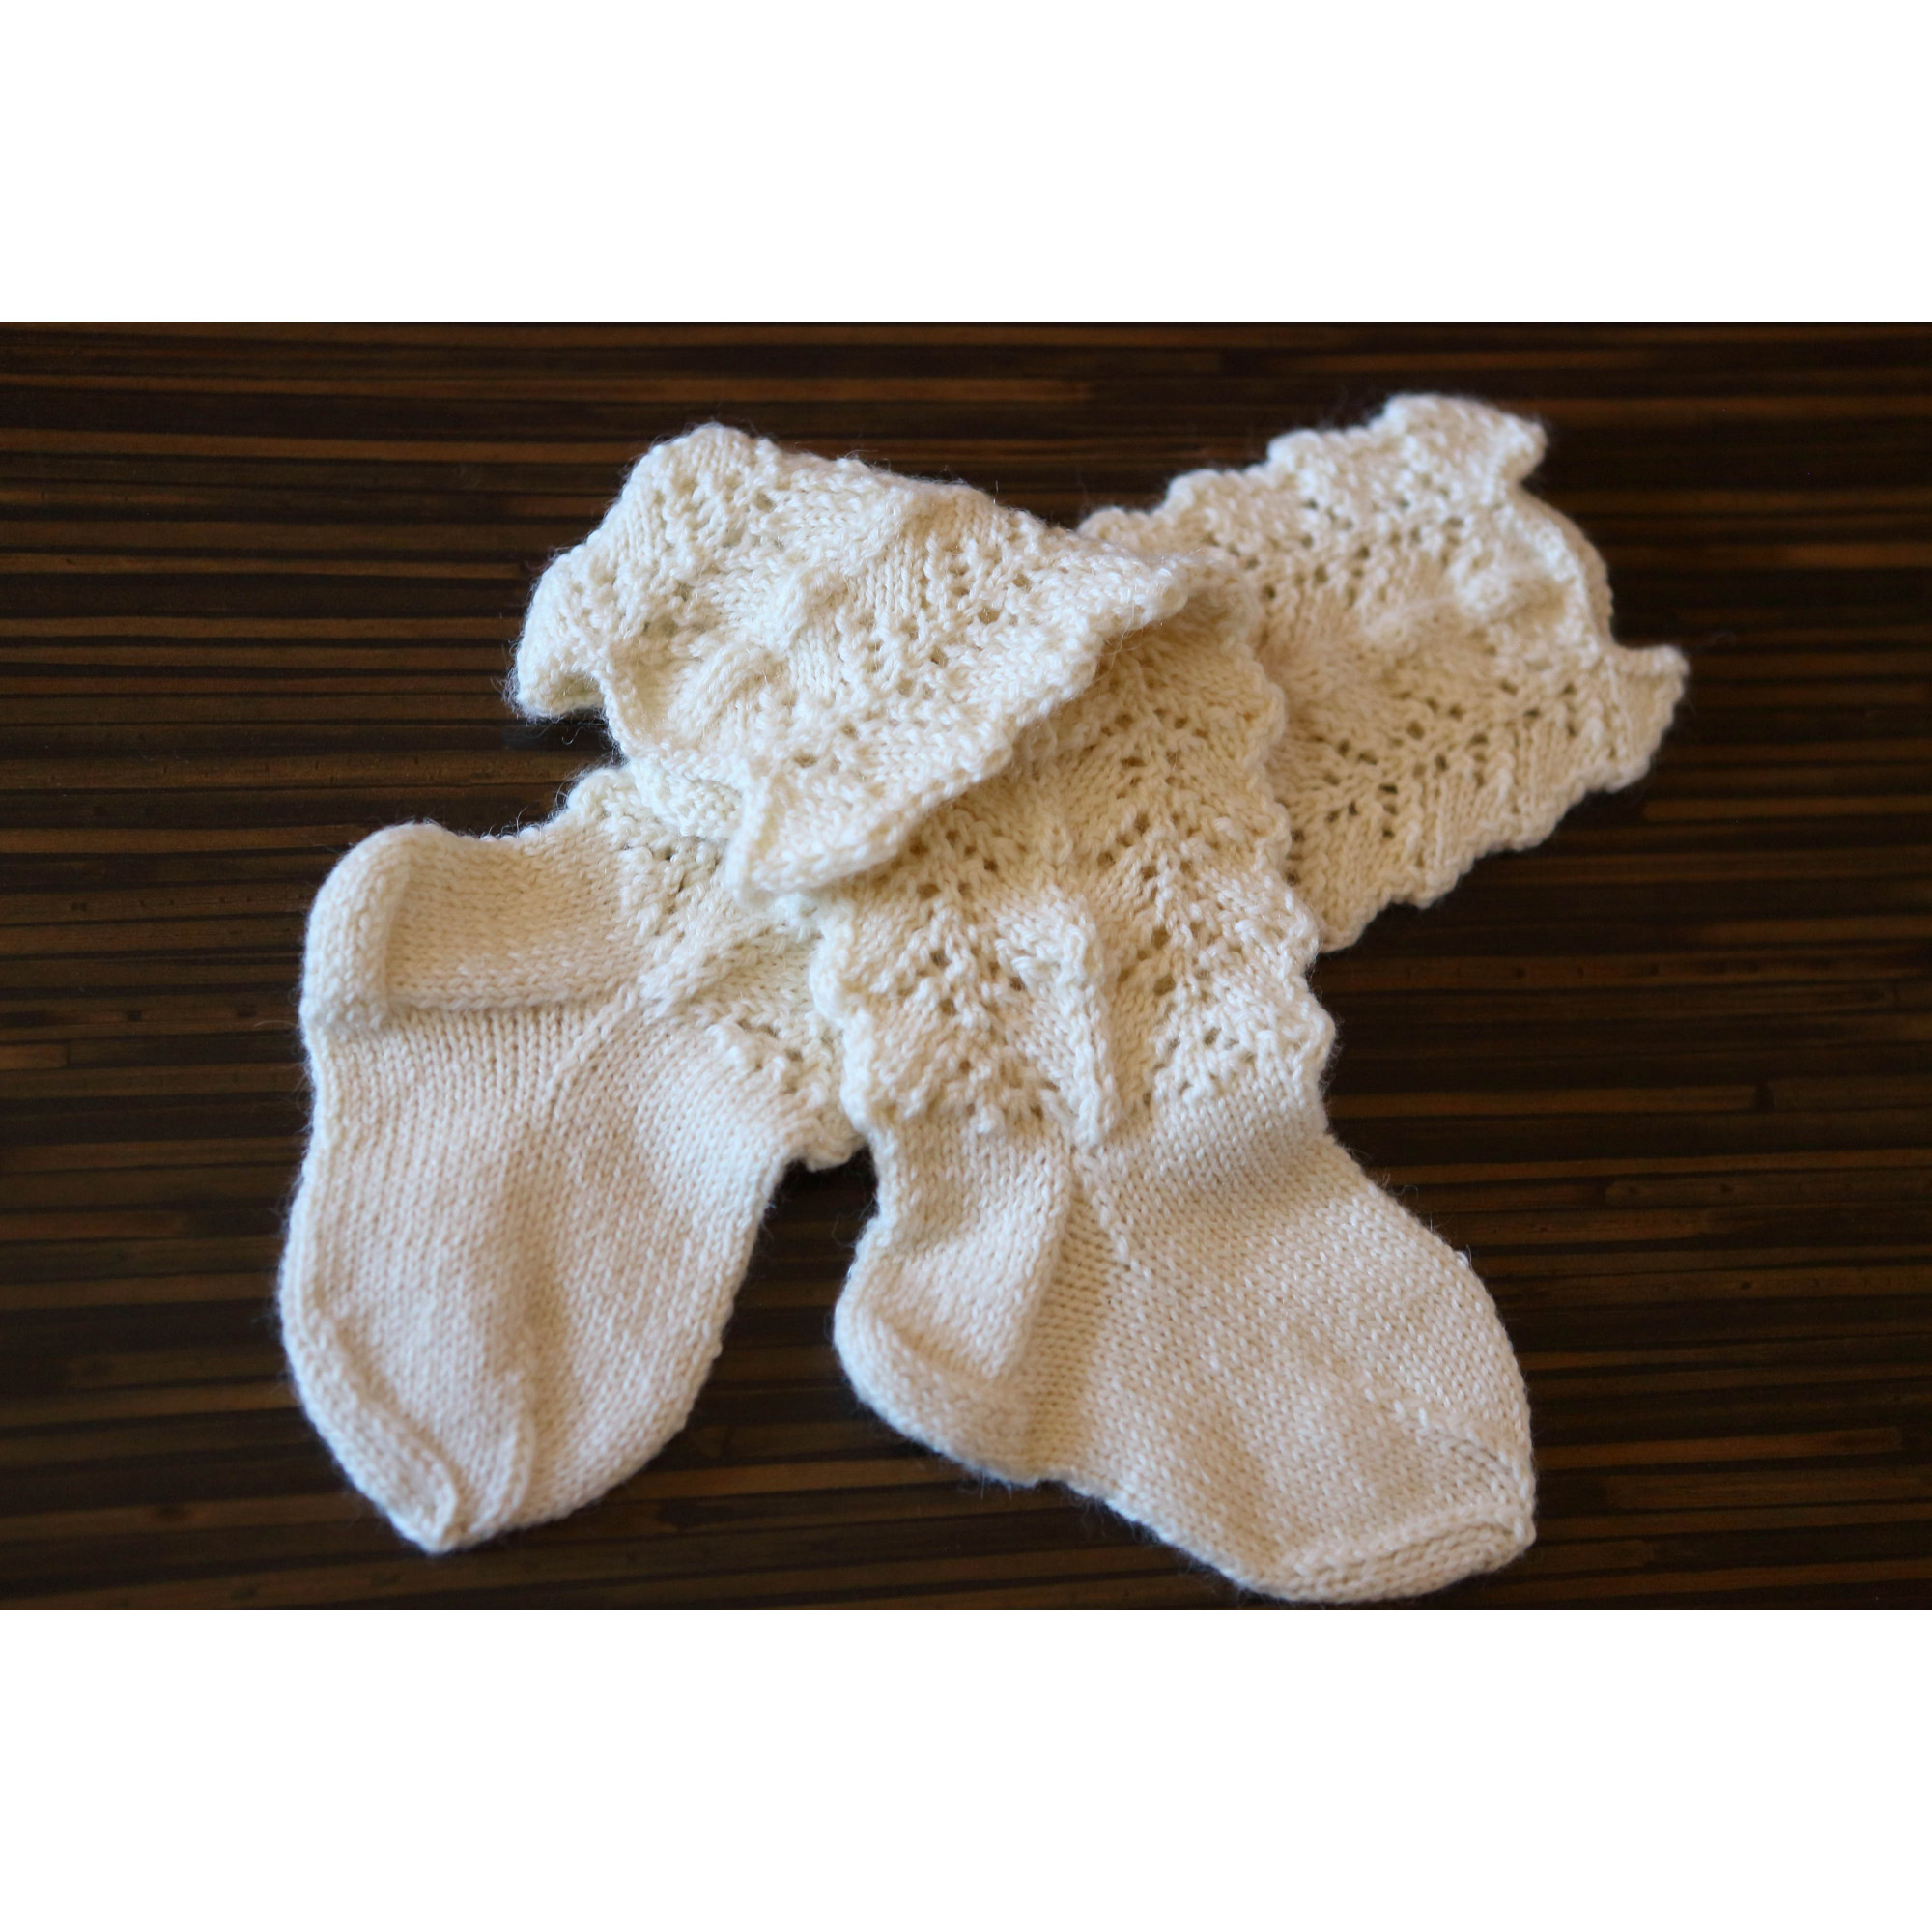 White Lace Socks Vintage Loungewear For Infant